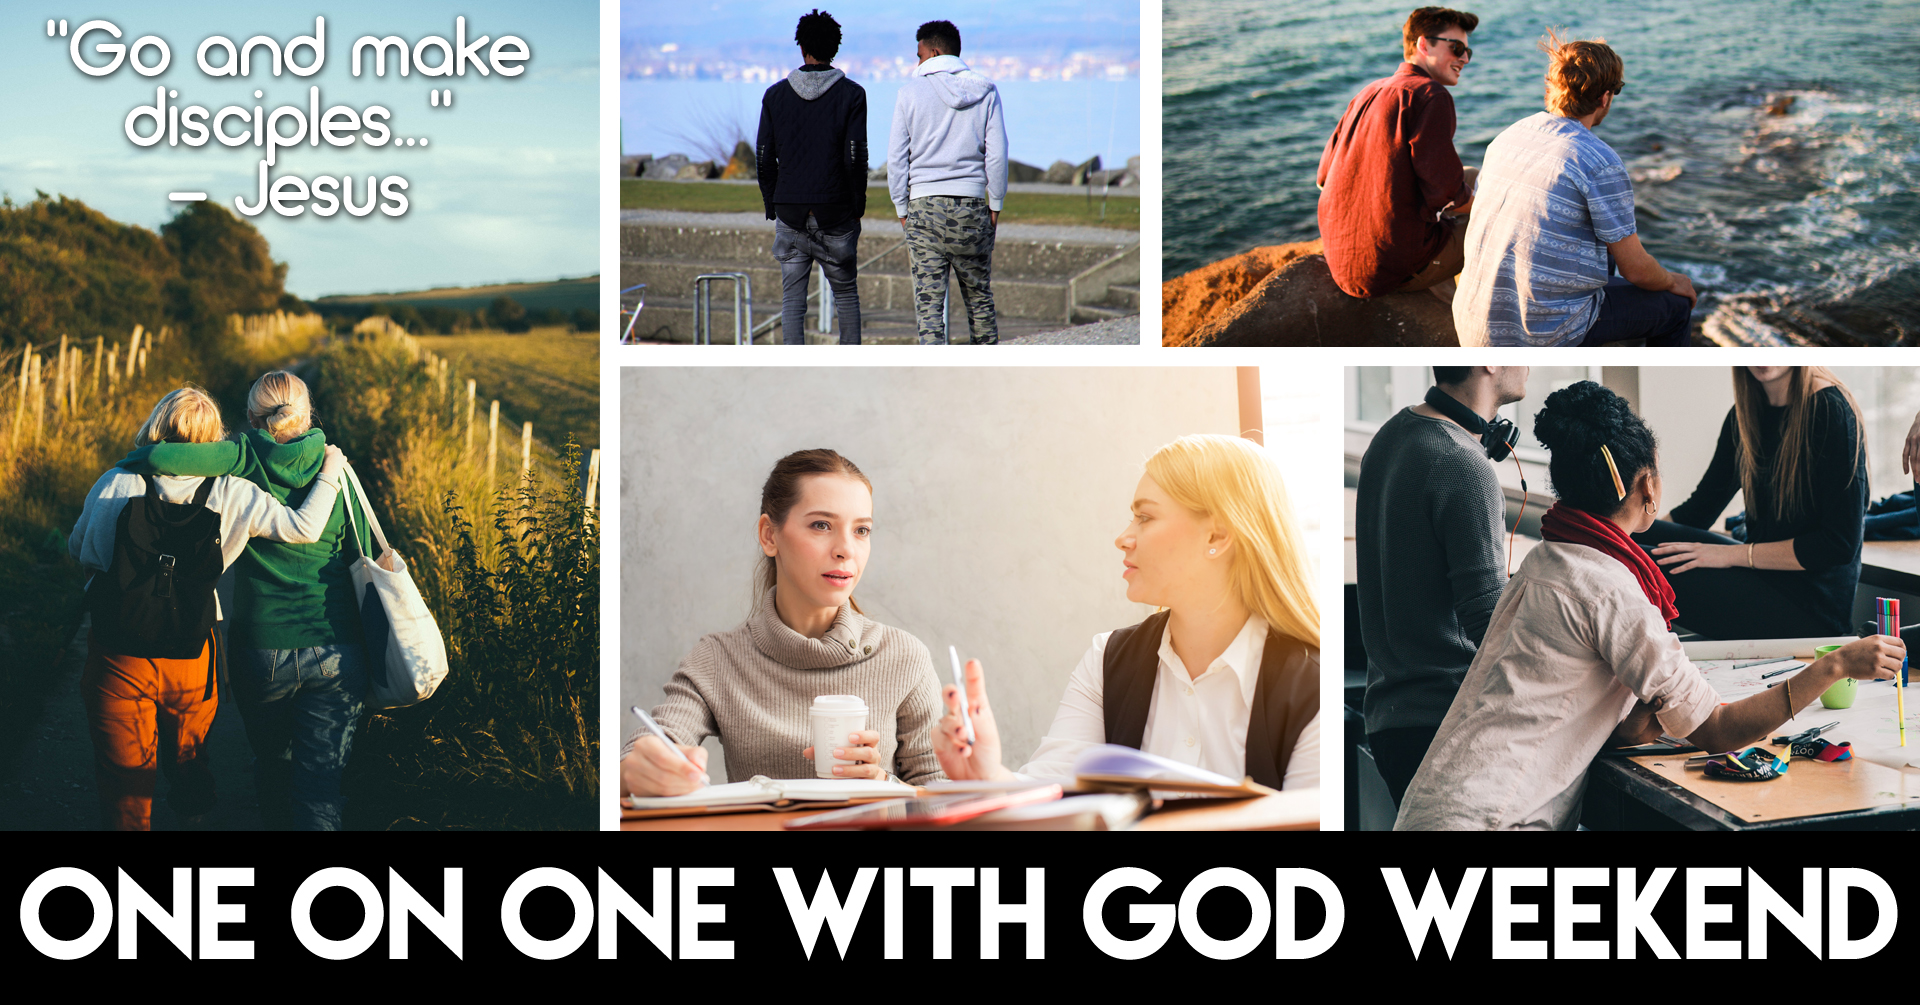 One on one with god facebook event